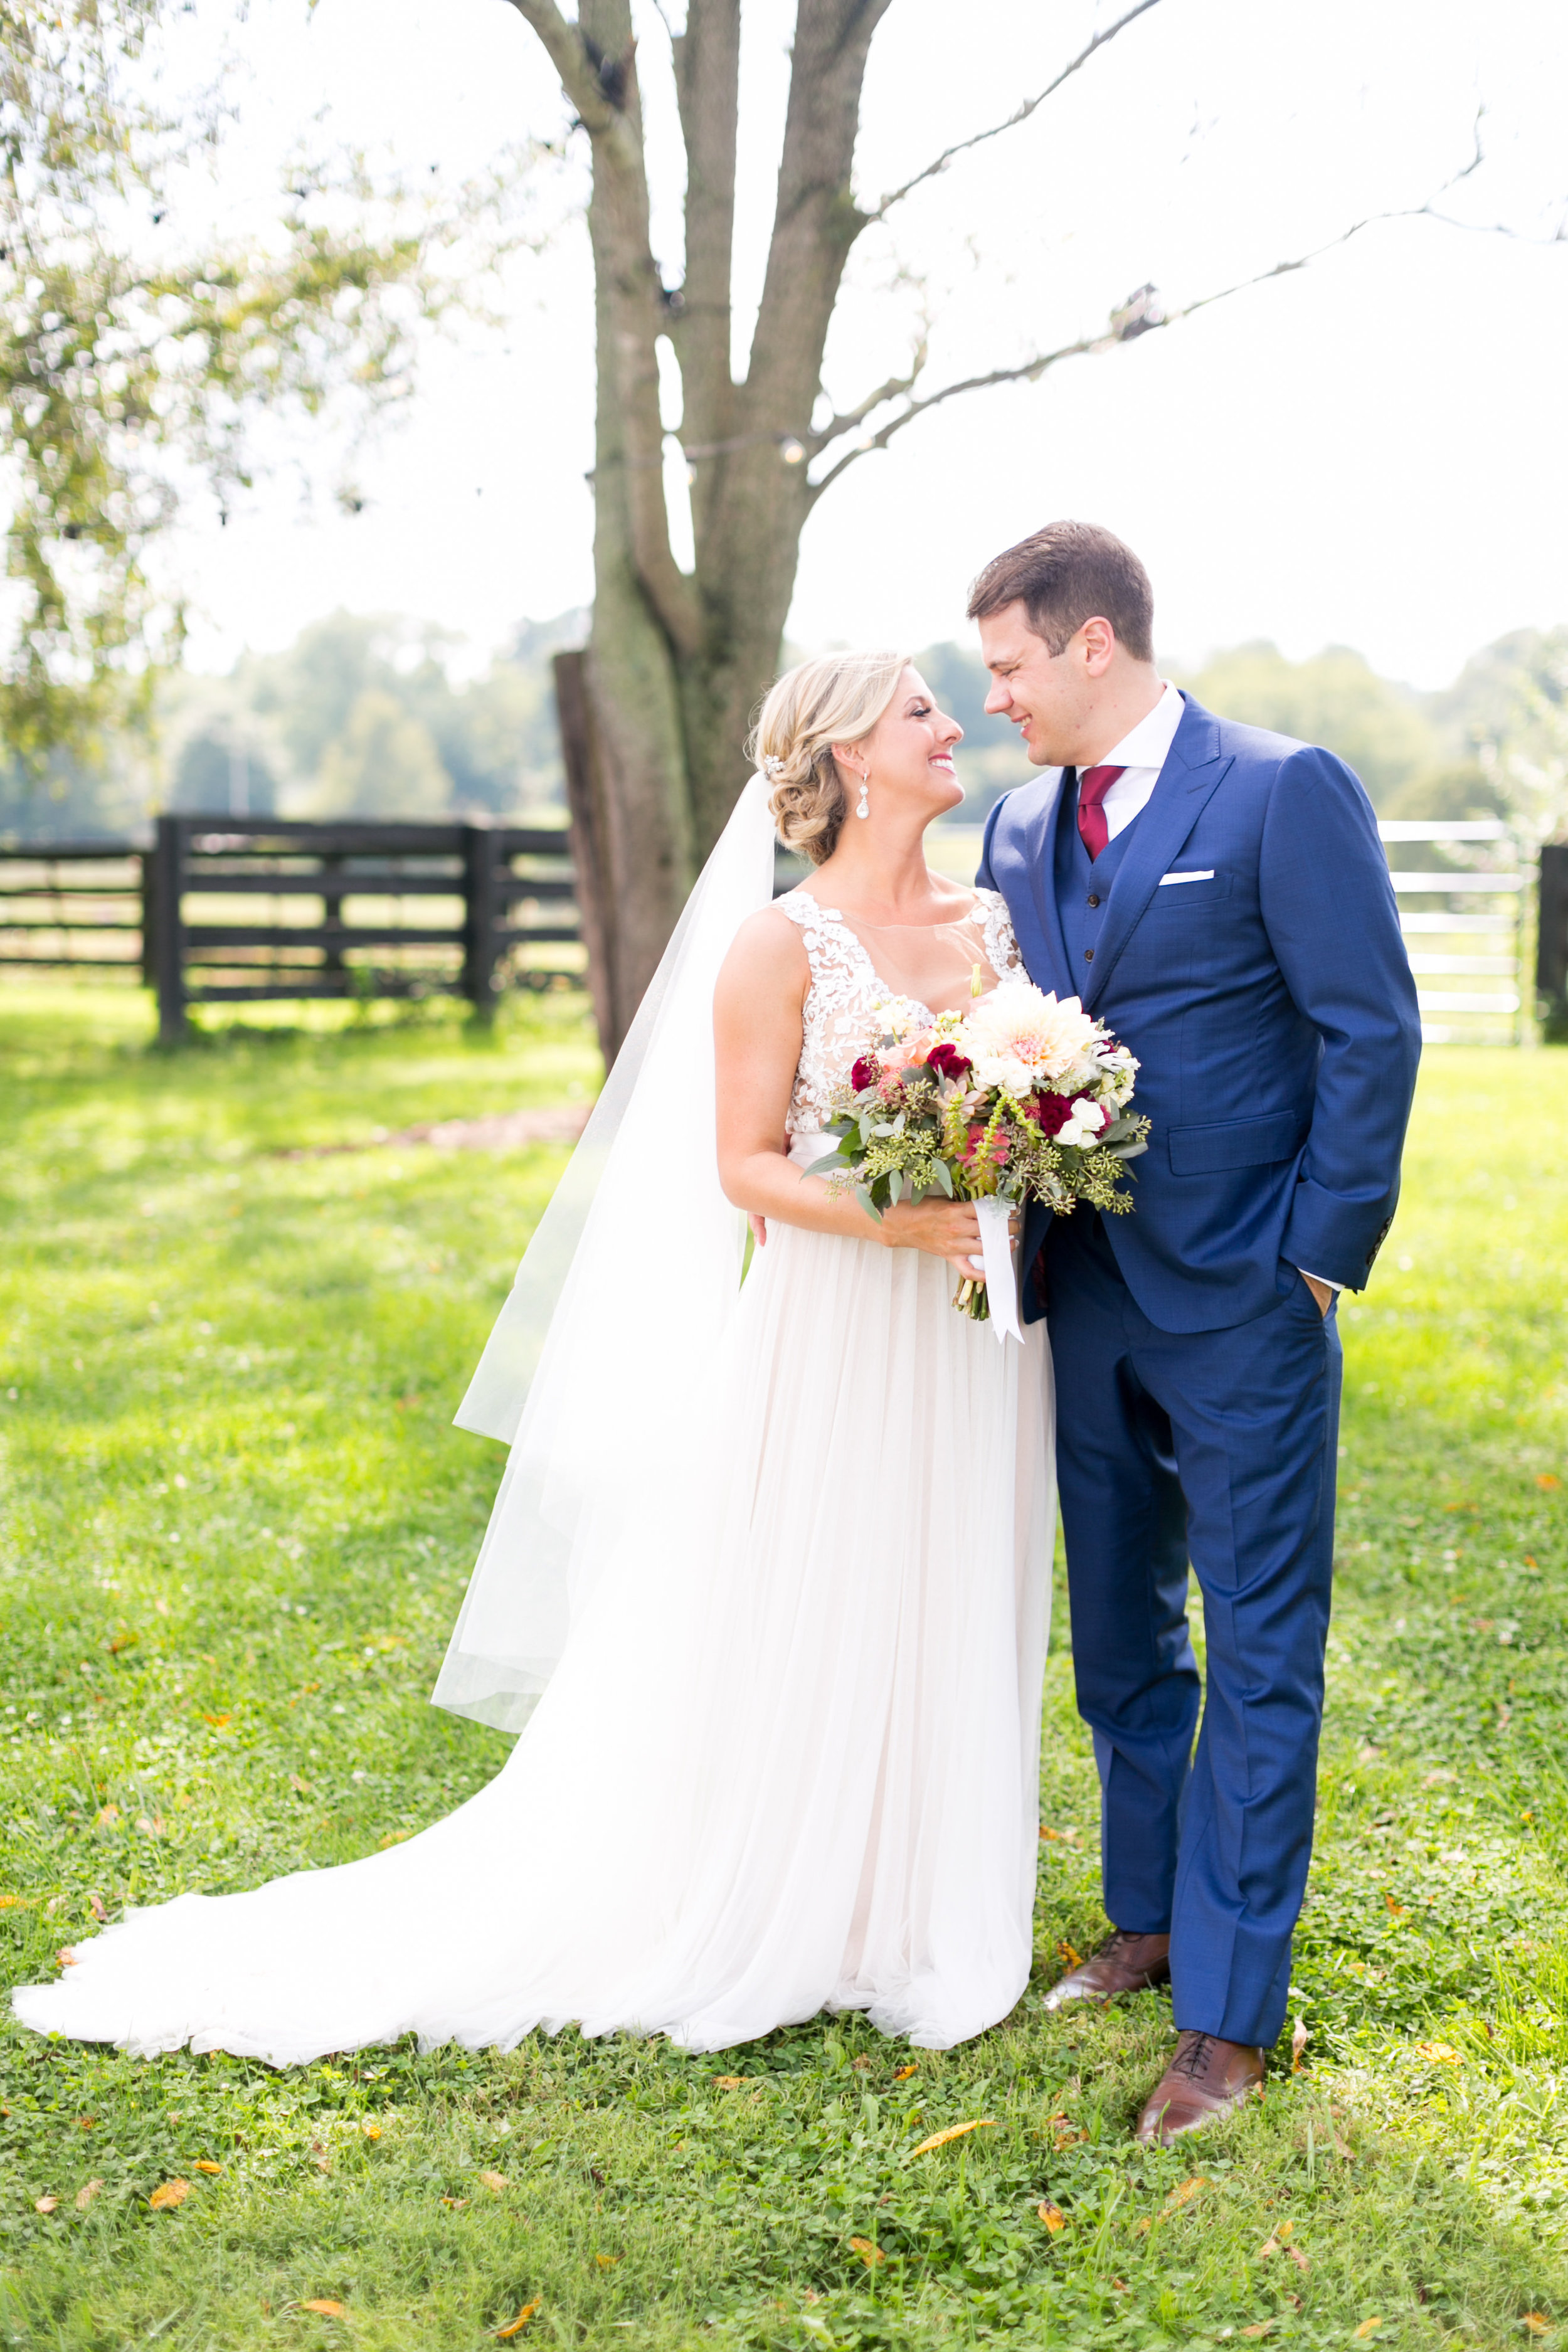 Jenna Macey Married-Lauren s Favorites-0059.jpg